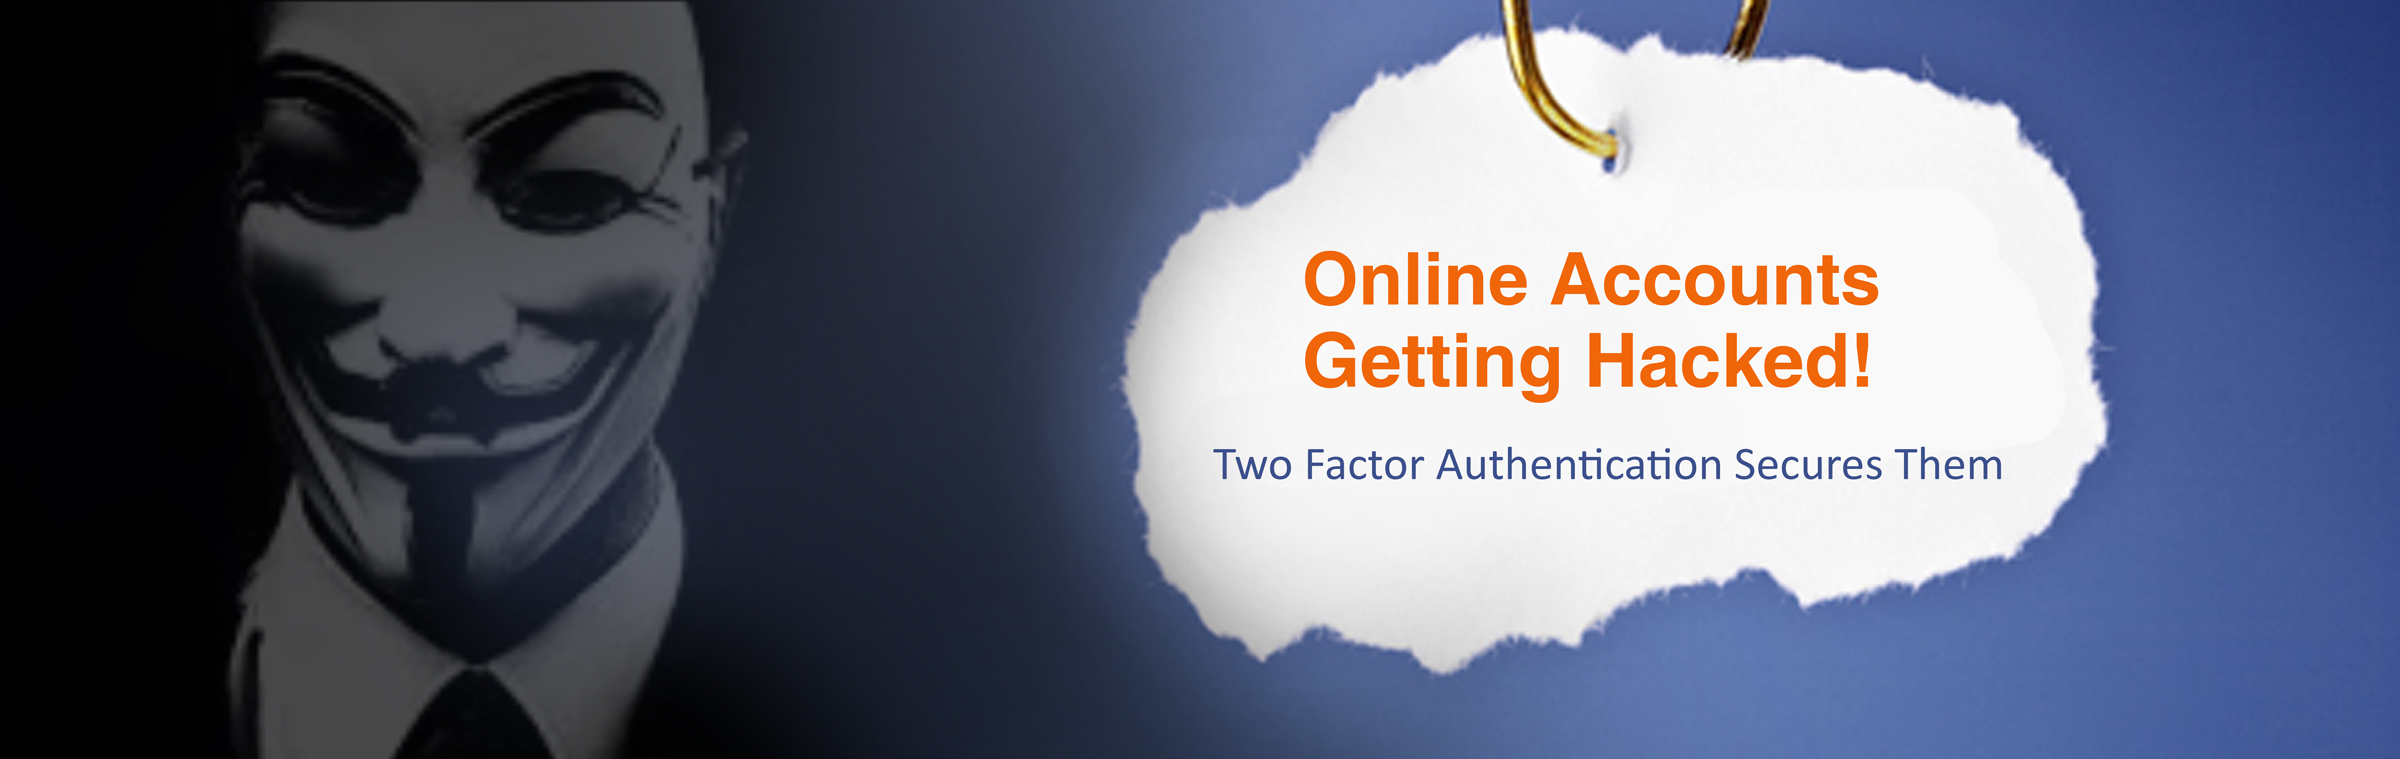 Online Accounts Getting Hacked! Two Factor Authentication Secures Them